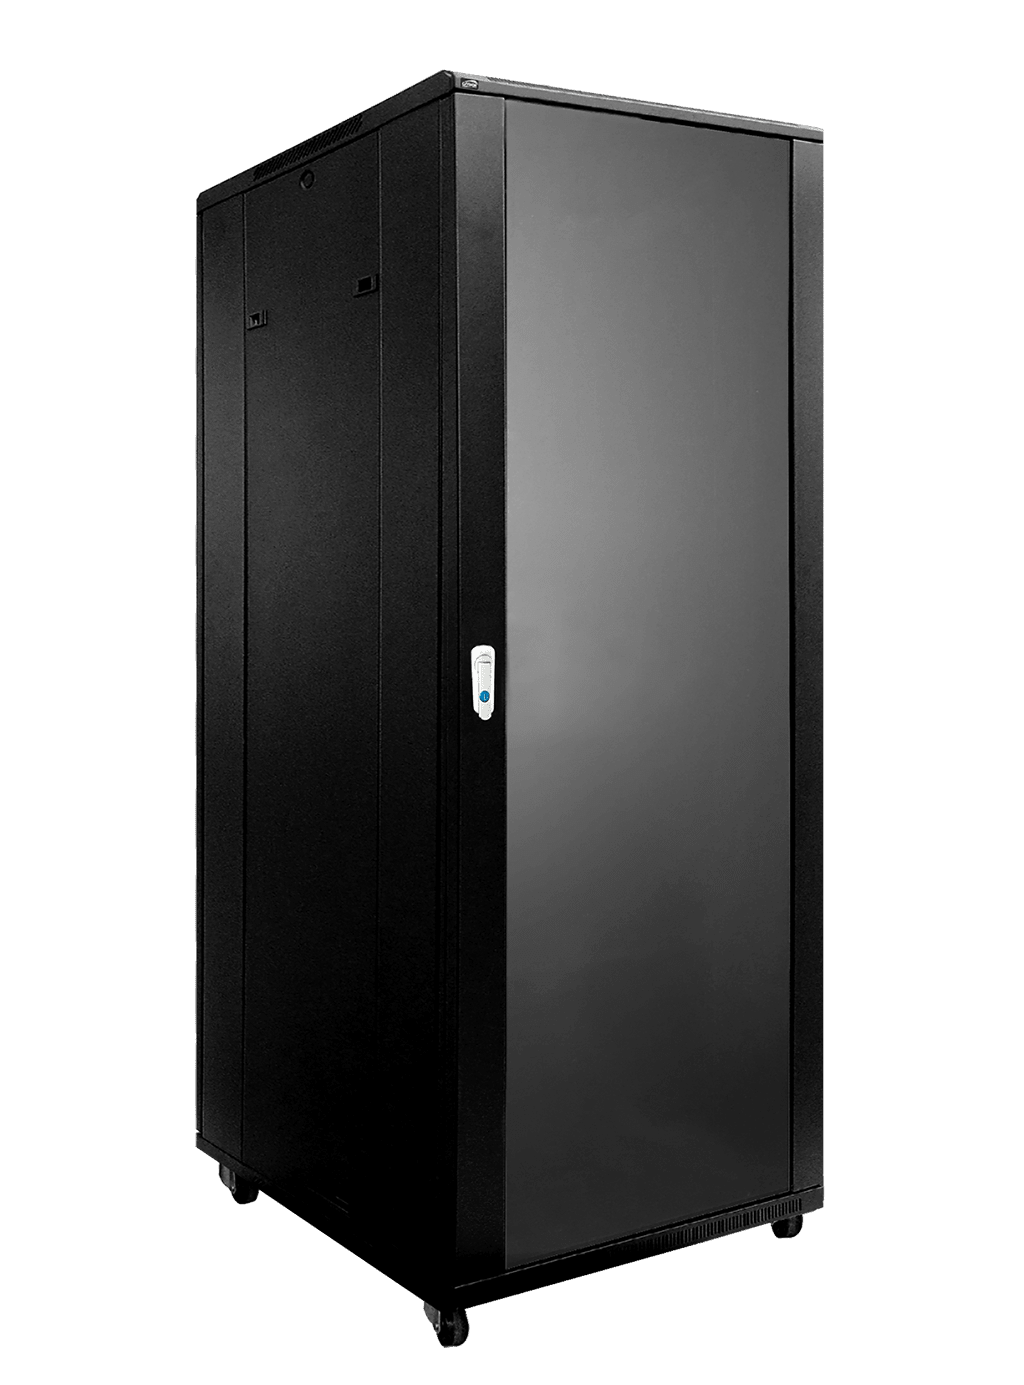 "SPR832 - 19"" rack cabinet - 32 units - 800mm depth"